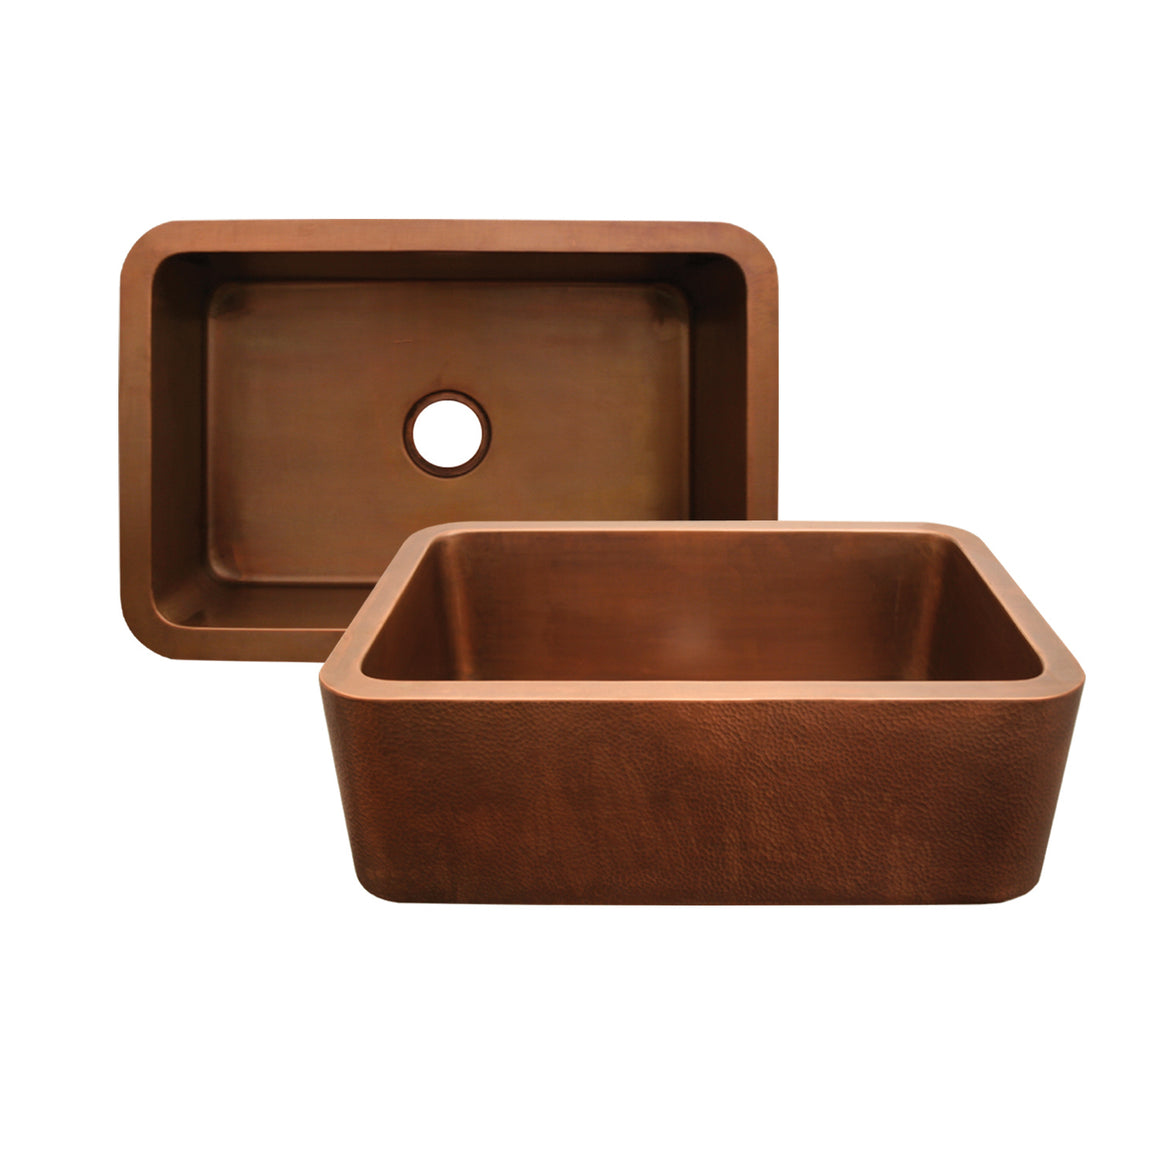 Copperhaus rectangular undermount sink with hammered front apron